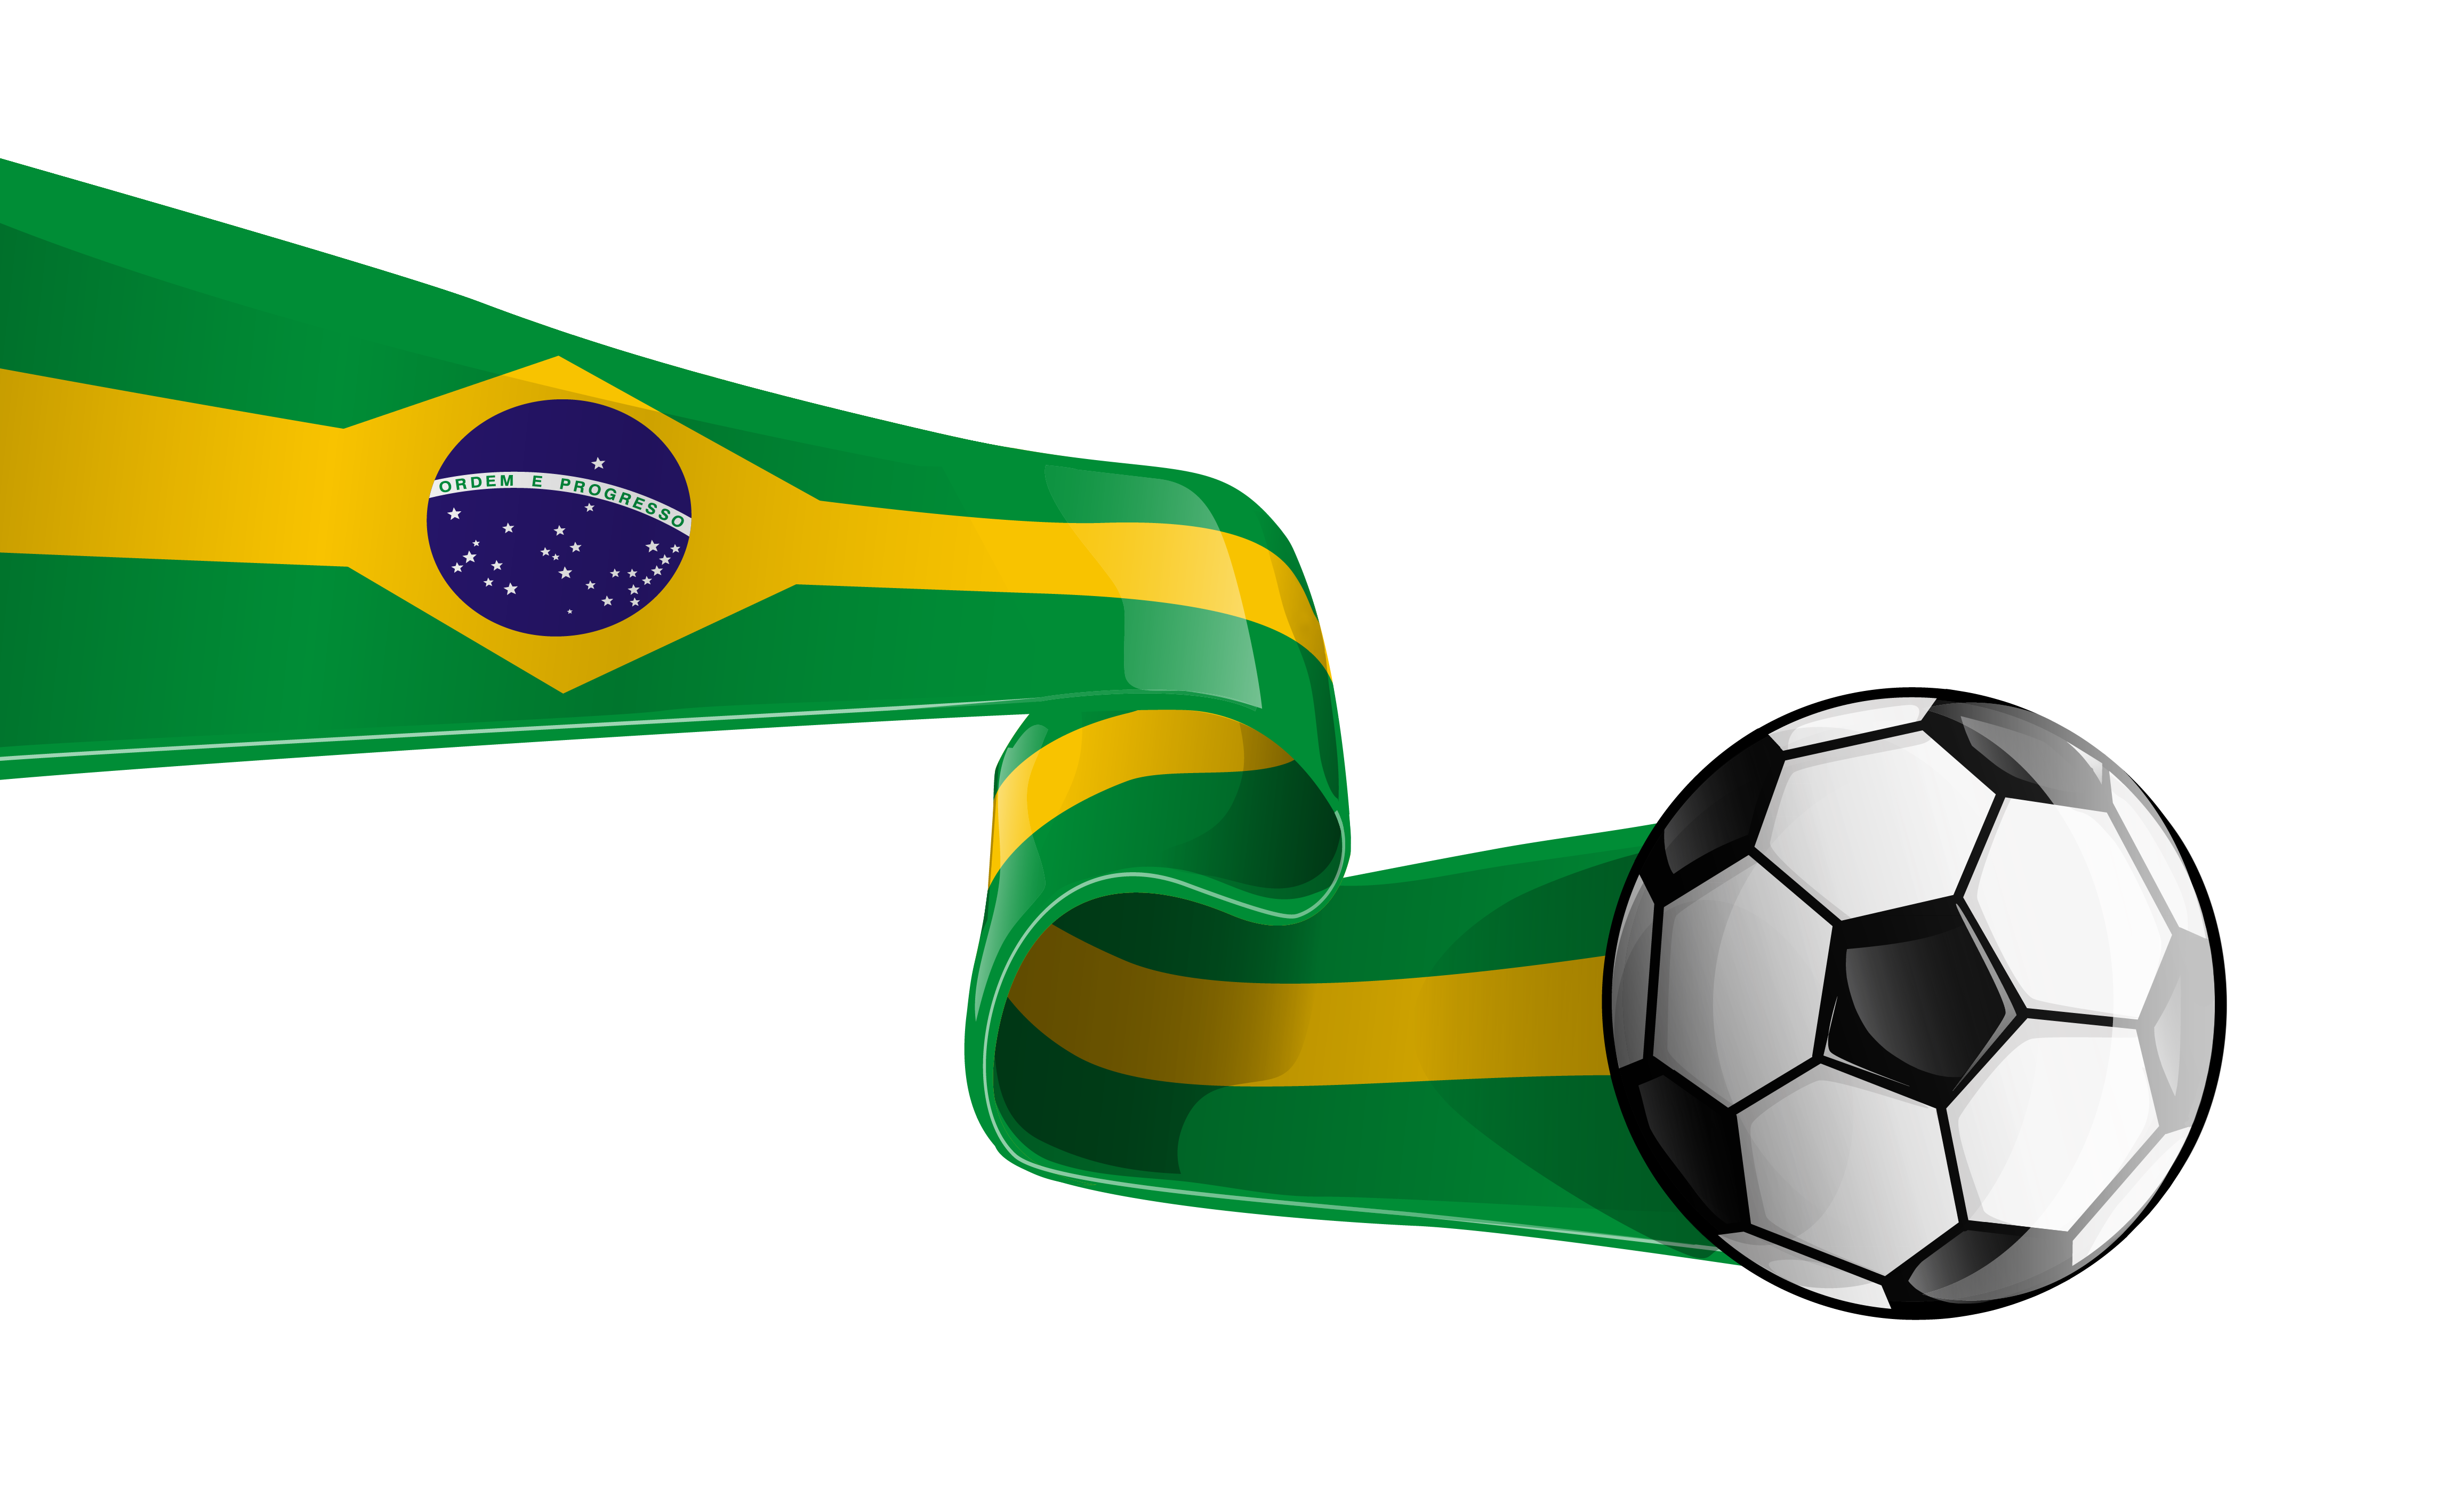 vector free download Soccer clipart flag. Ball with brazilian transparent